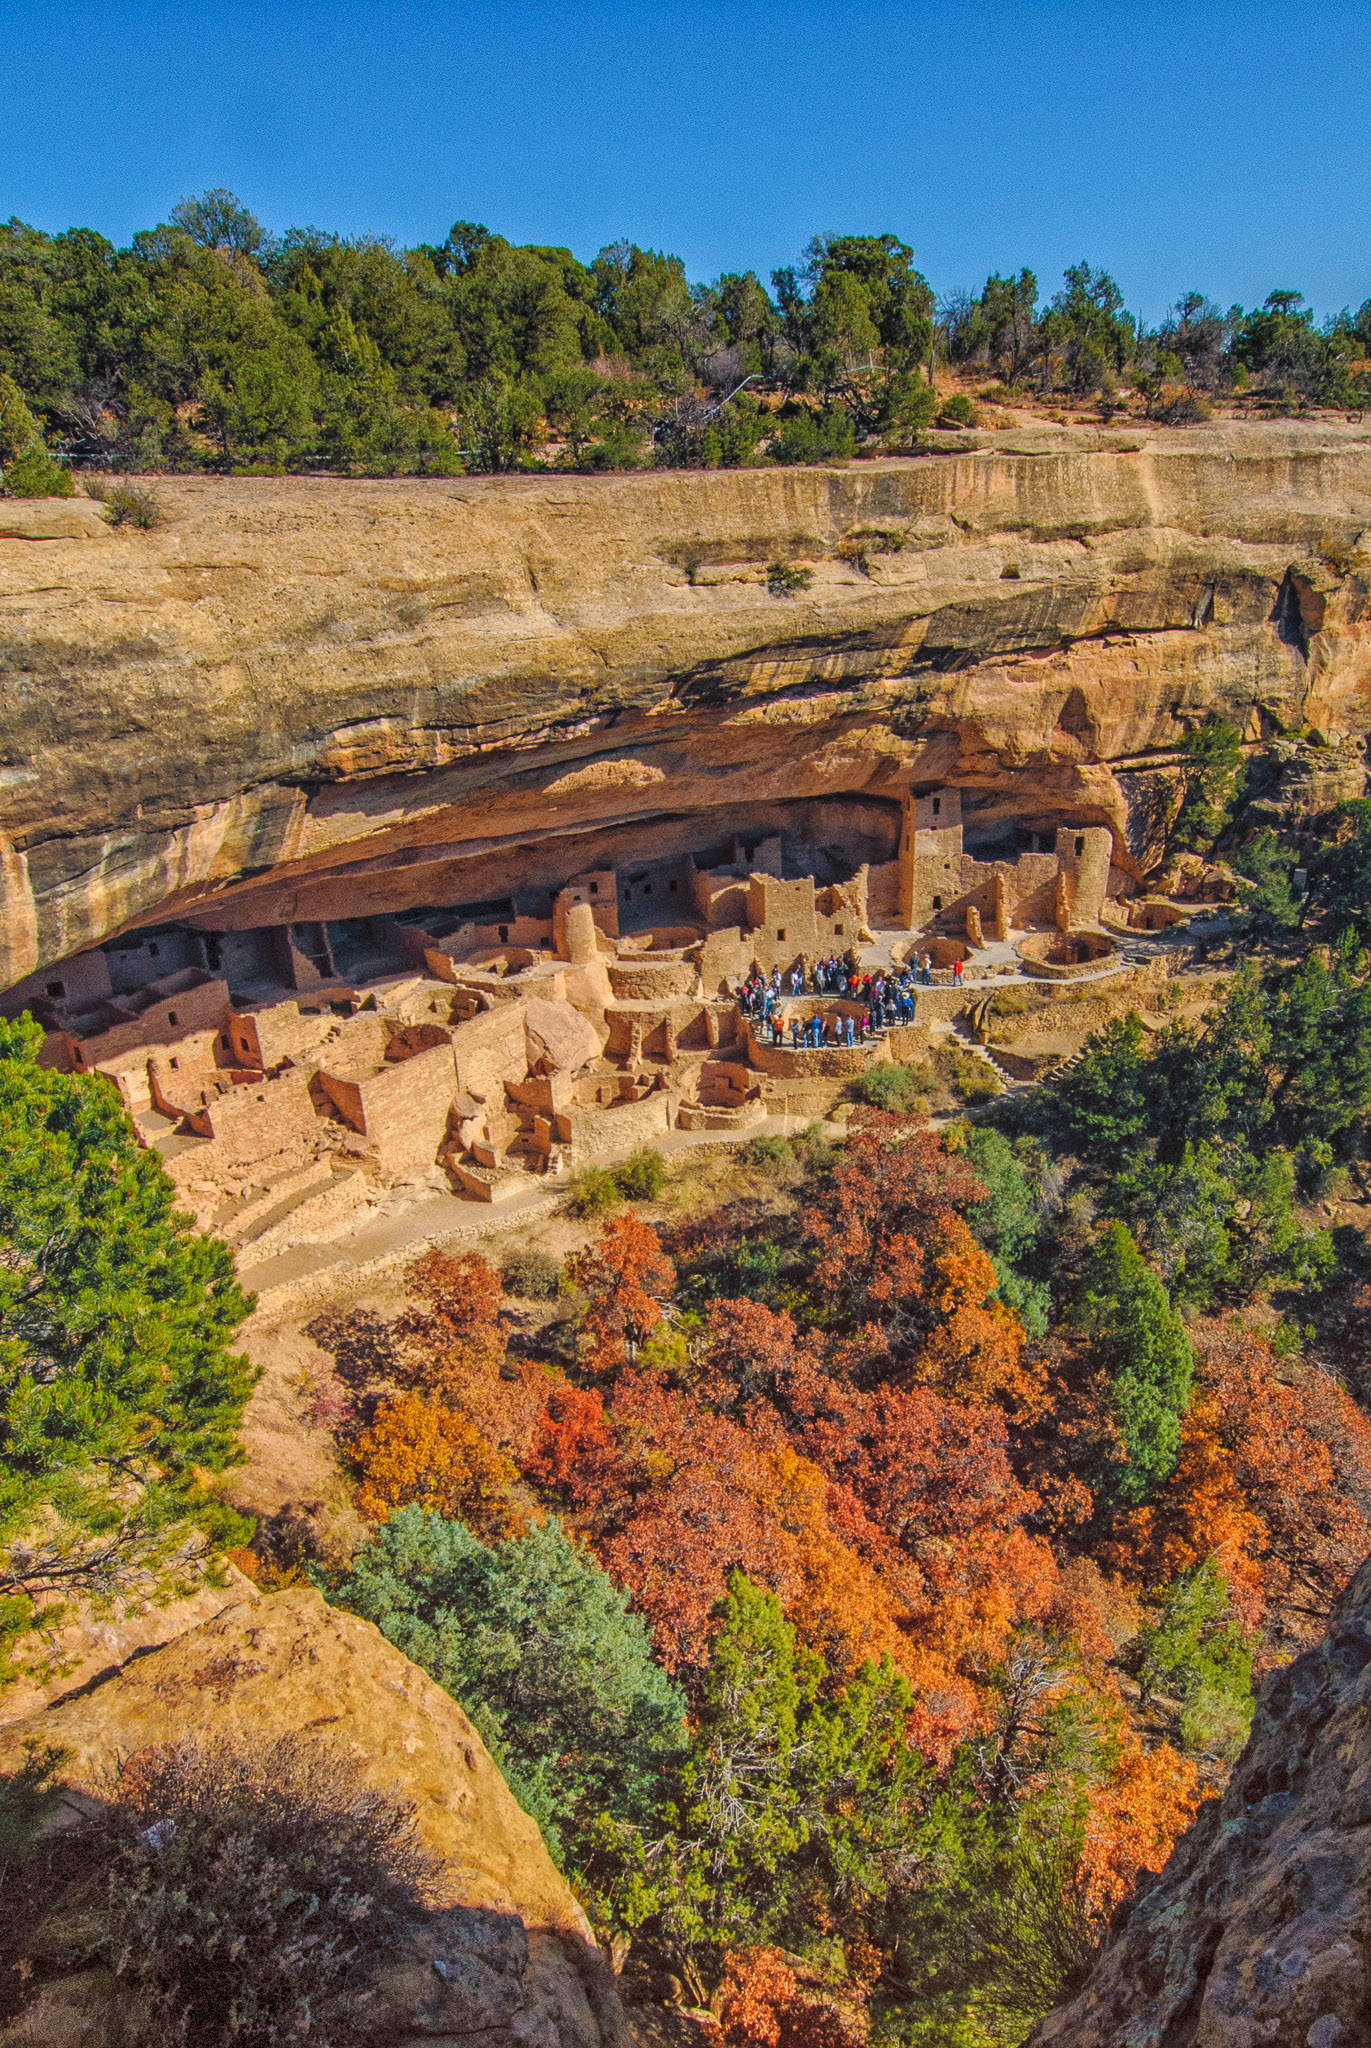 Overview of Cliff Palace in Mesa Verde National Park. Tourists encircle an open kiva.